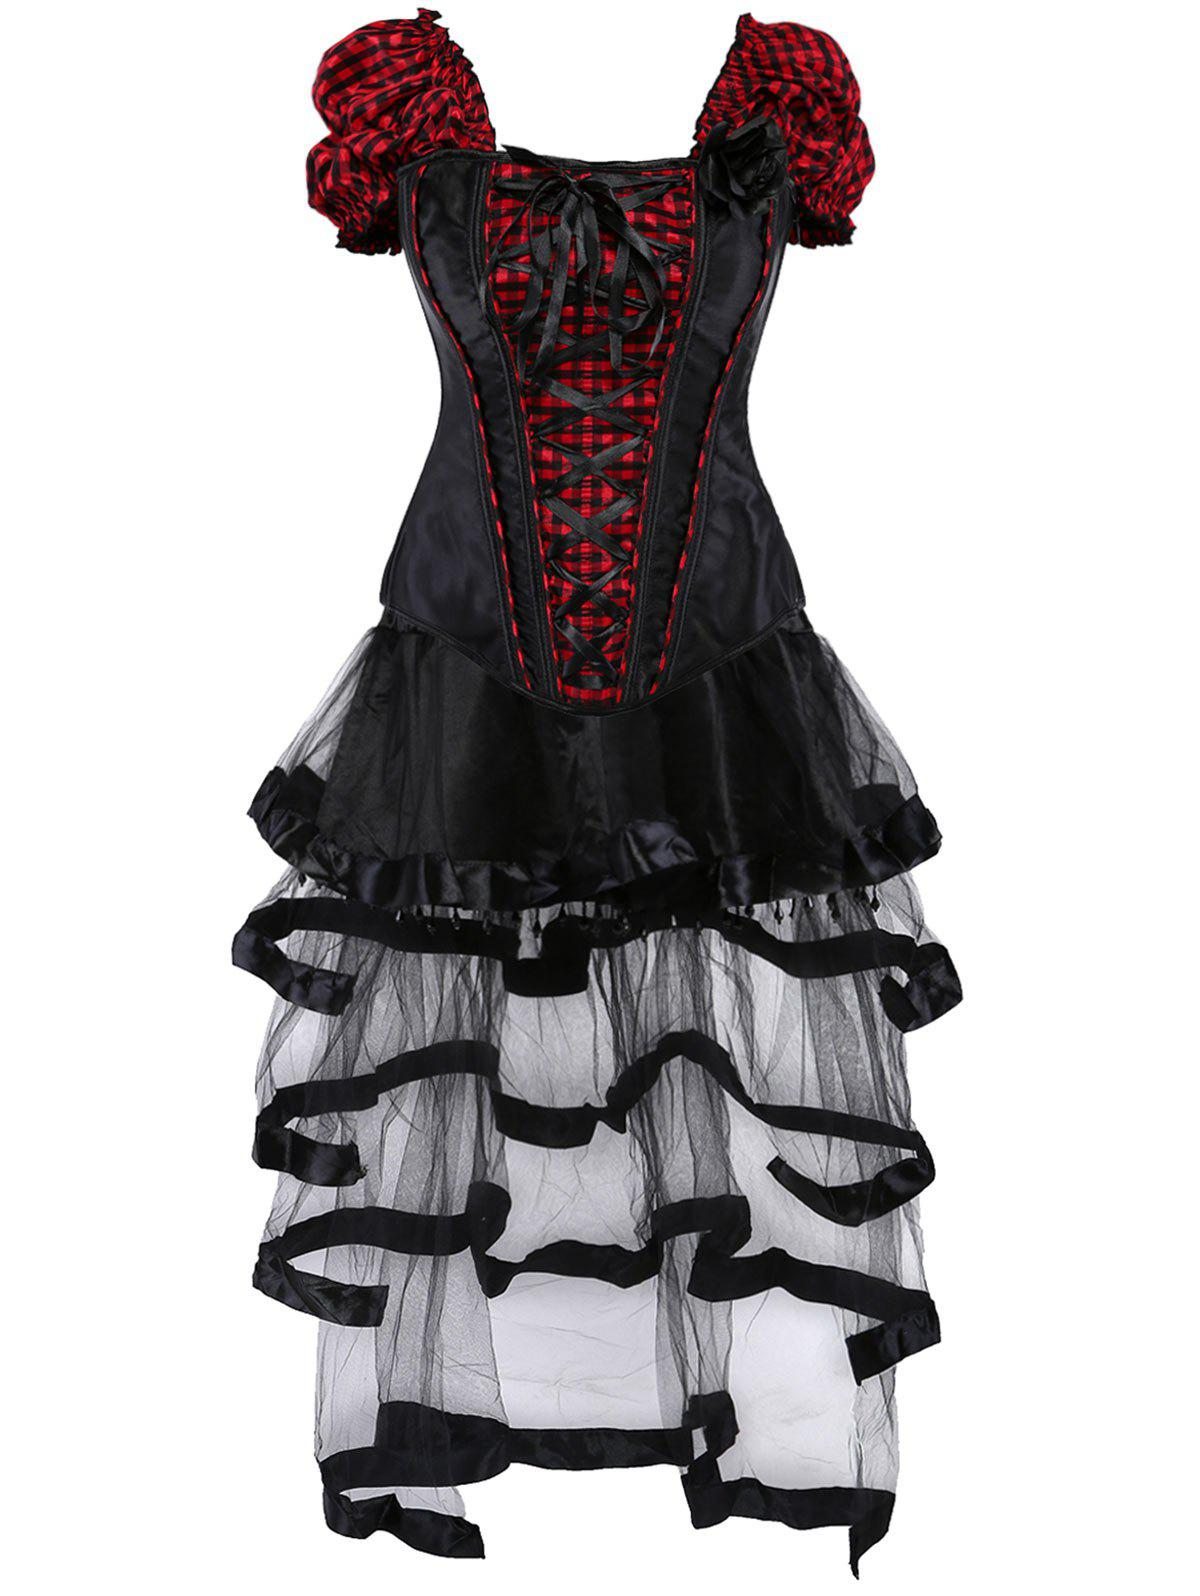 Gothic Checked Lace Up Corset with Sheer Skirt - RED/BLACK L